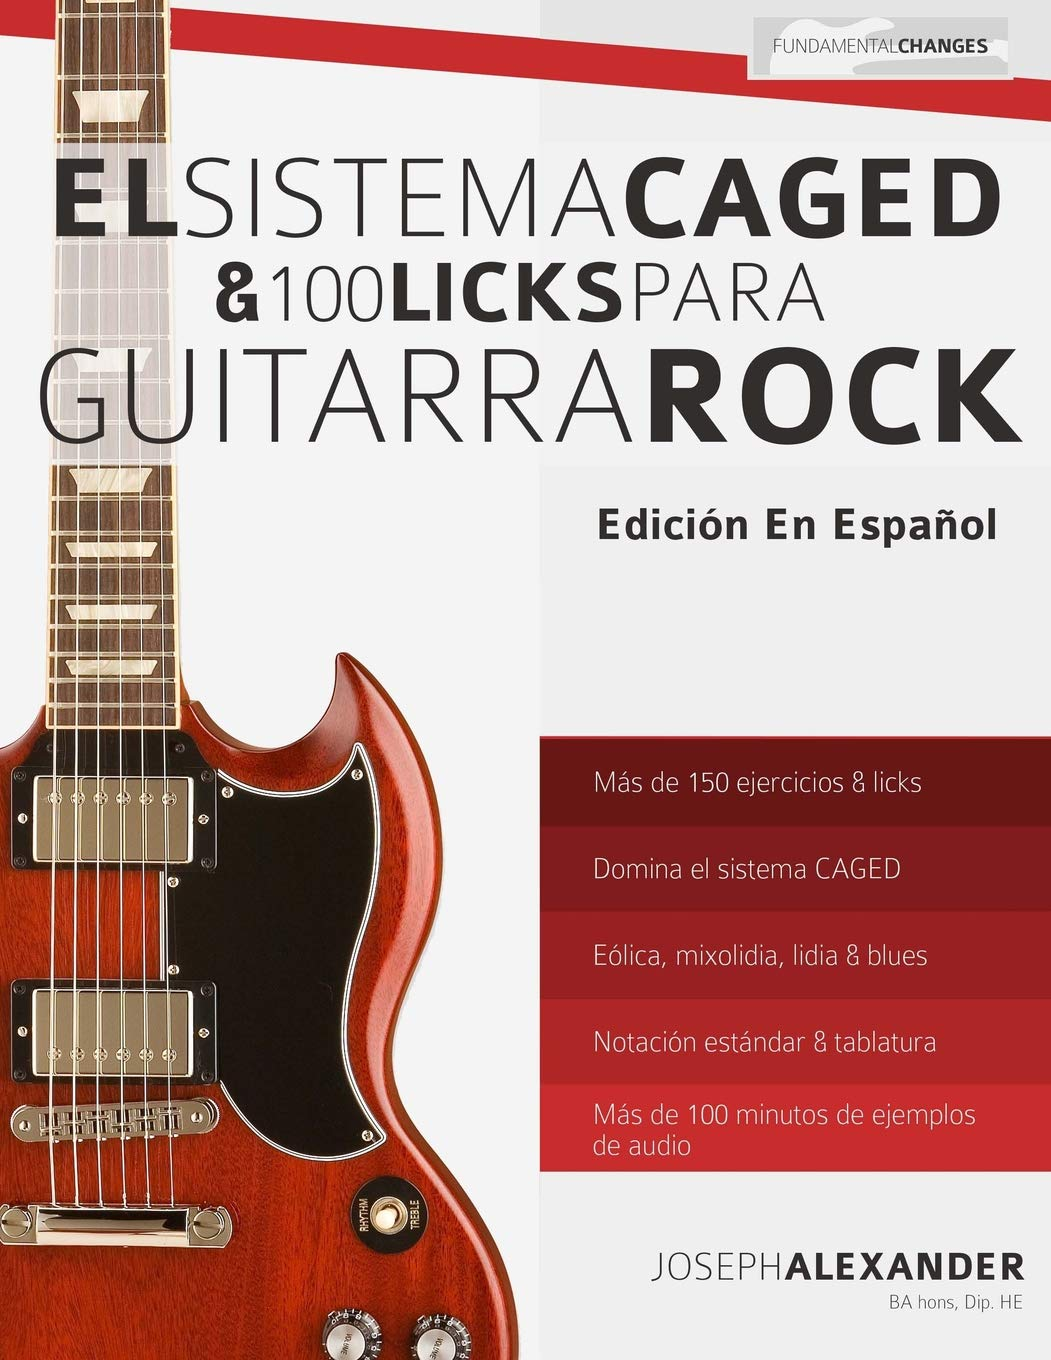 El sistema CAGED y 100 licks para guitarra rock: Amazon.es: Mr Joseph Alexander, Mr Gustavo Bustos: Libros